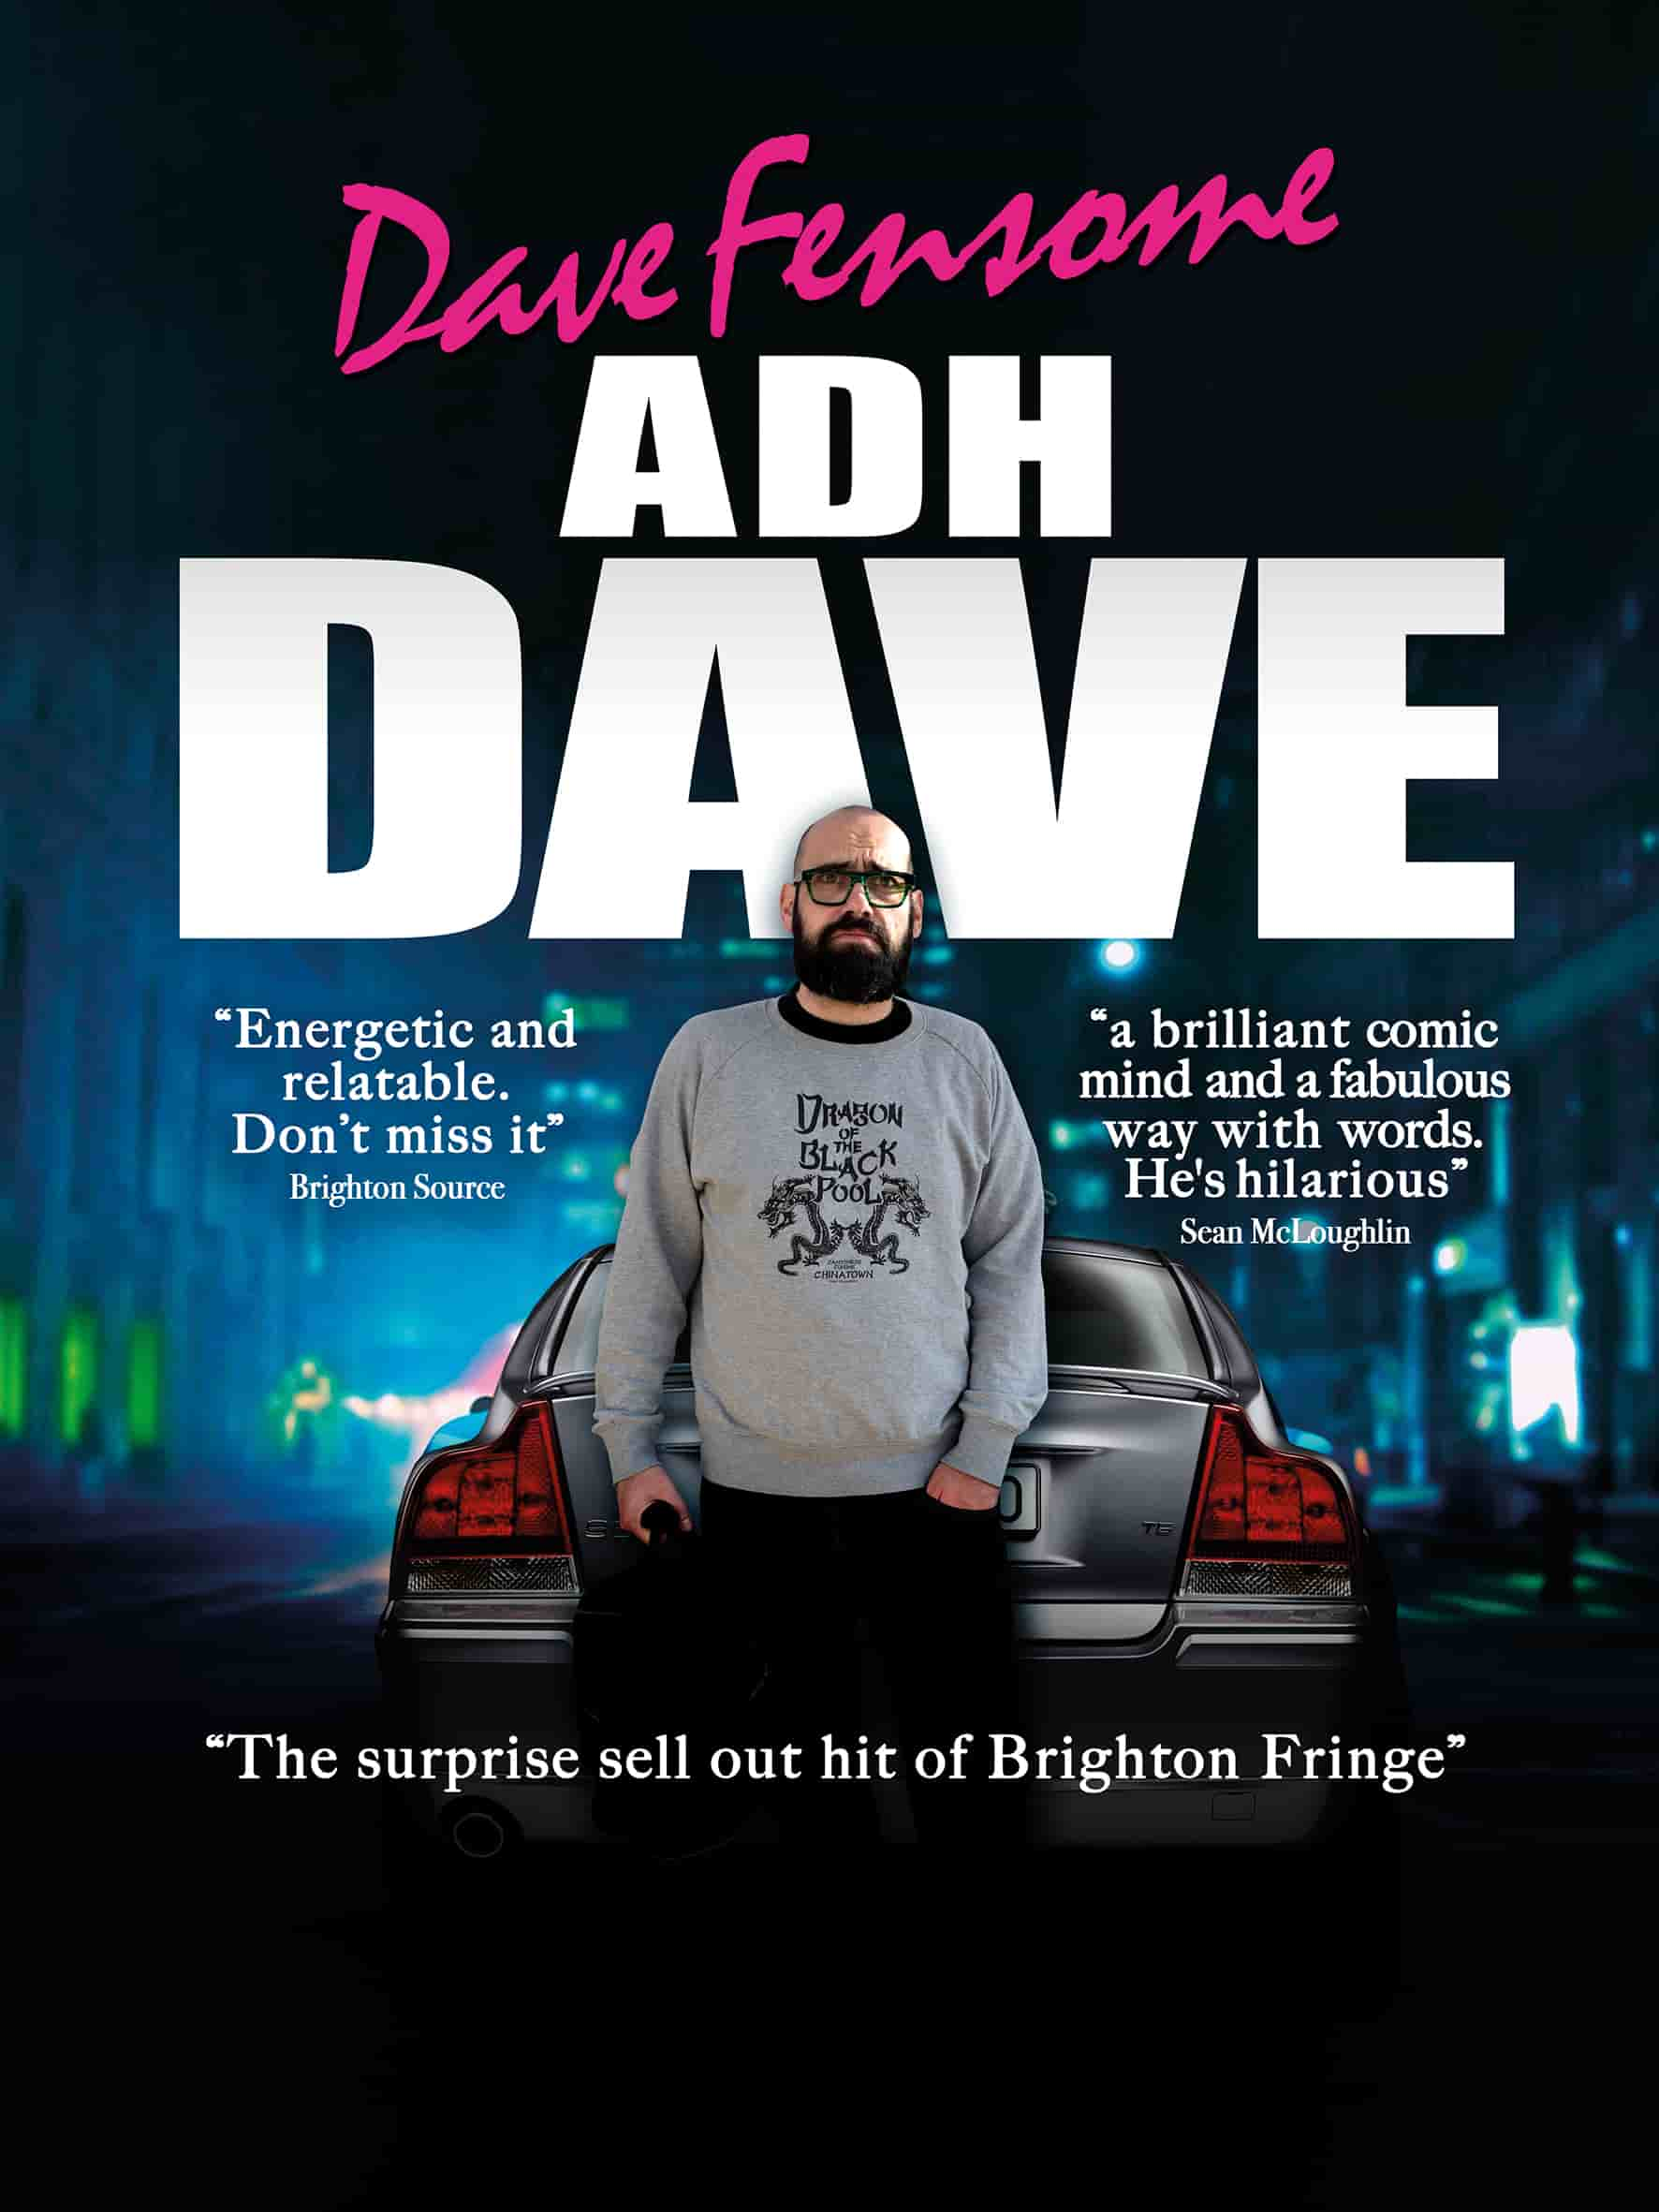 ADHDave